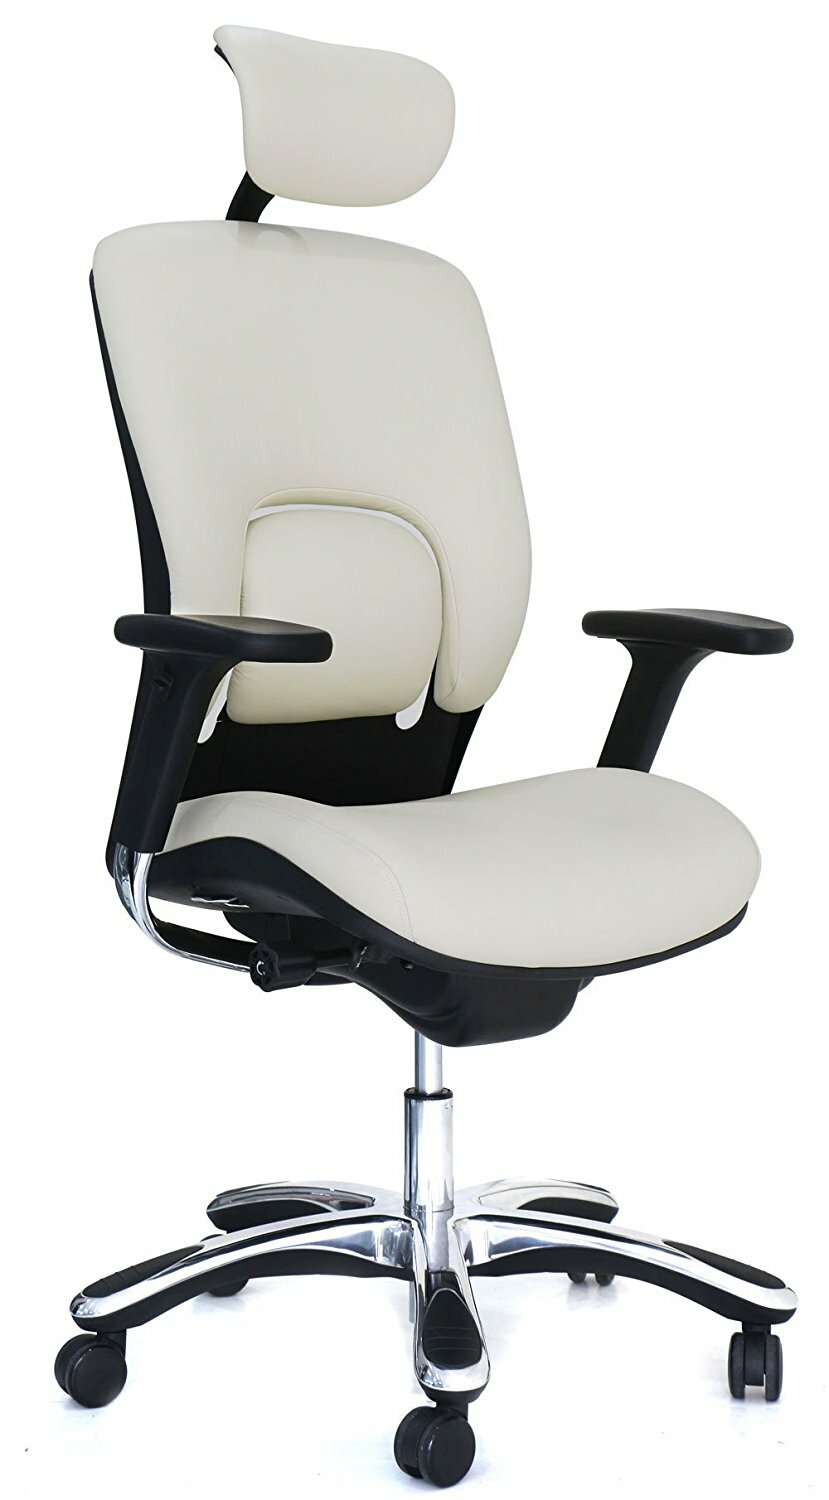 office chair genuine leather white. Office Chair Genuine Leather White S